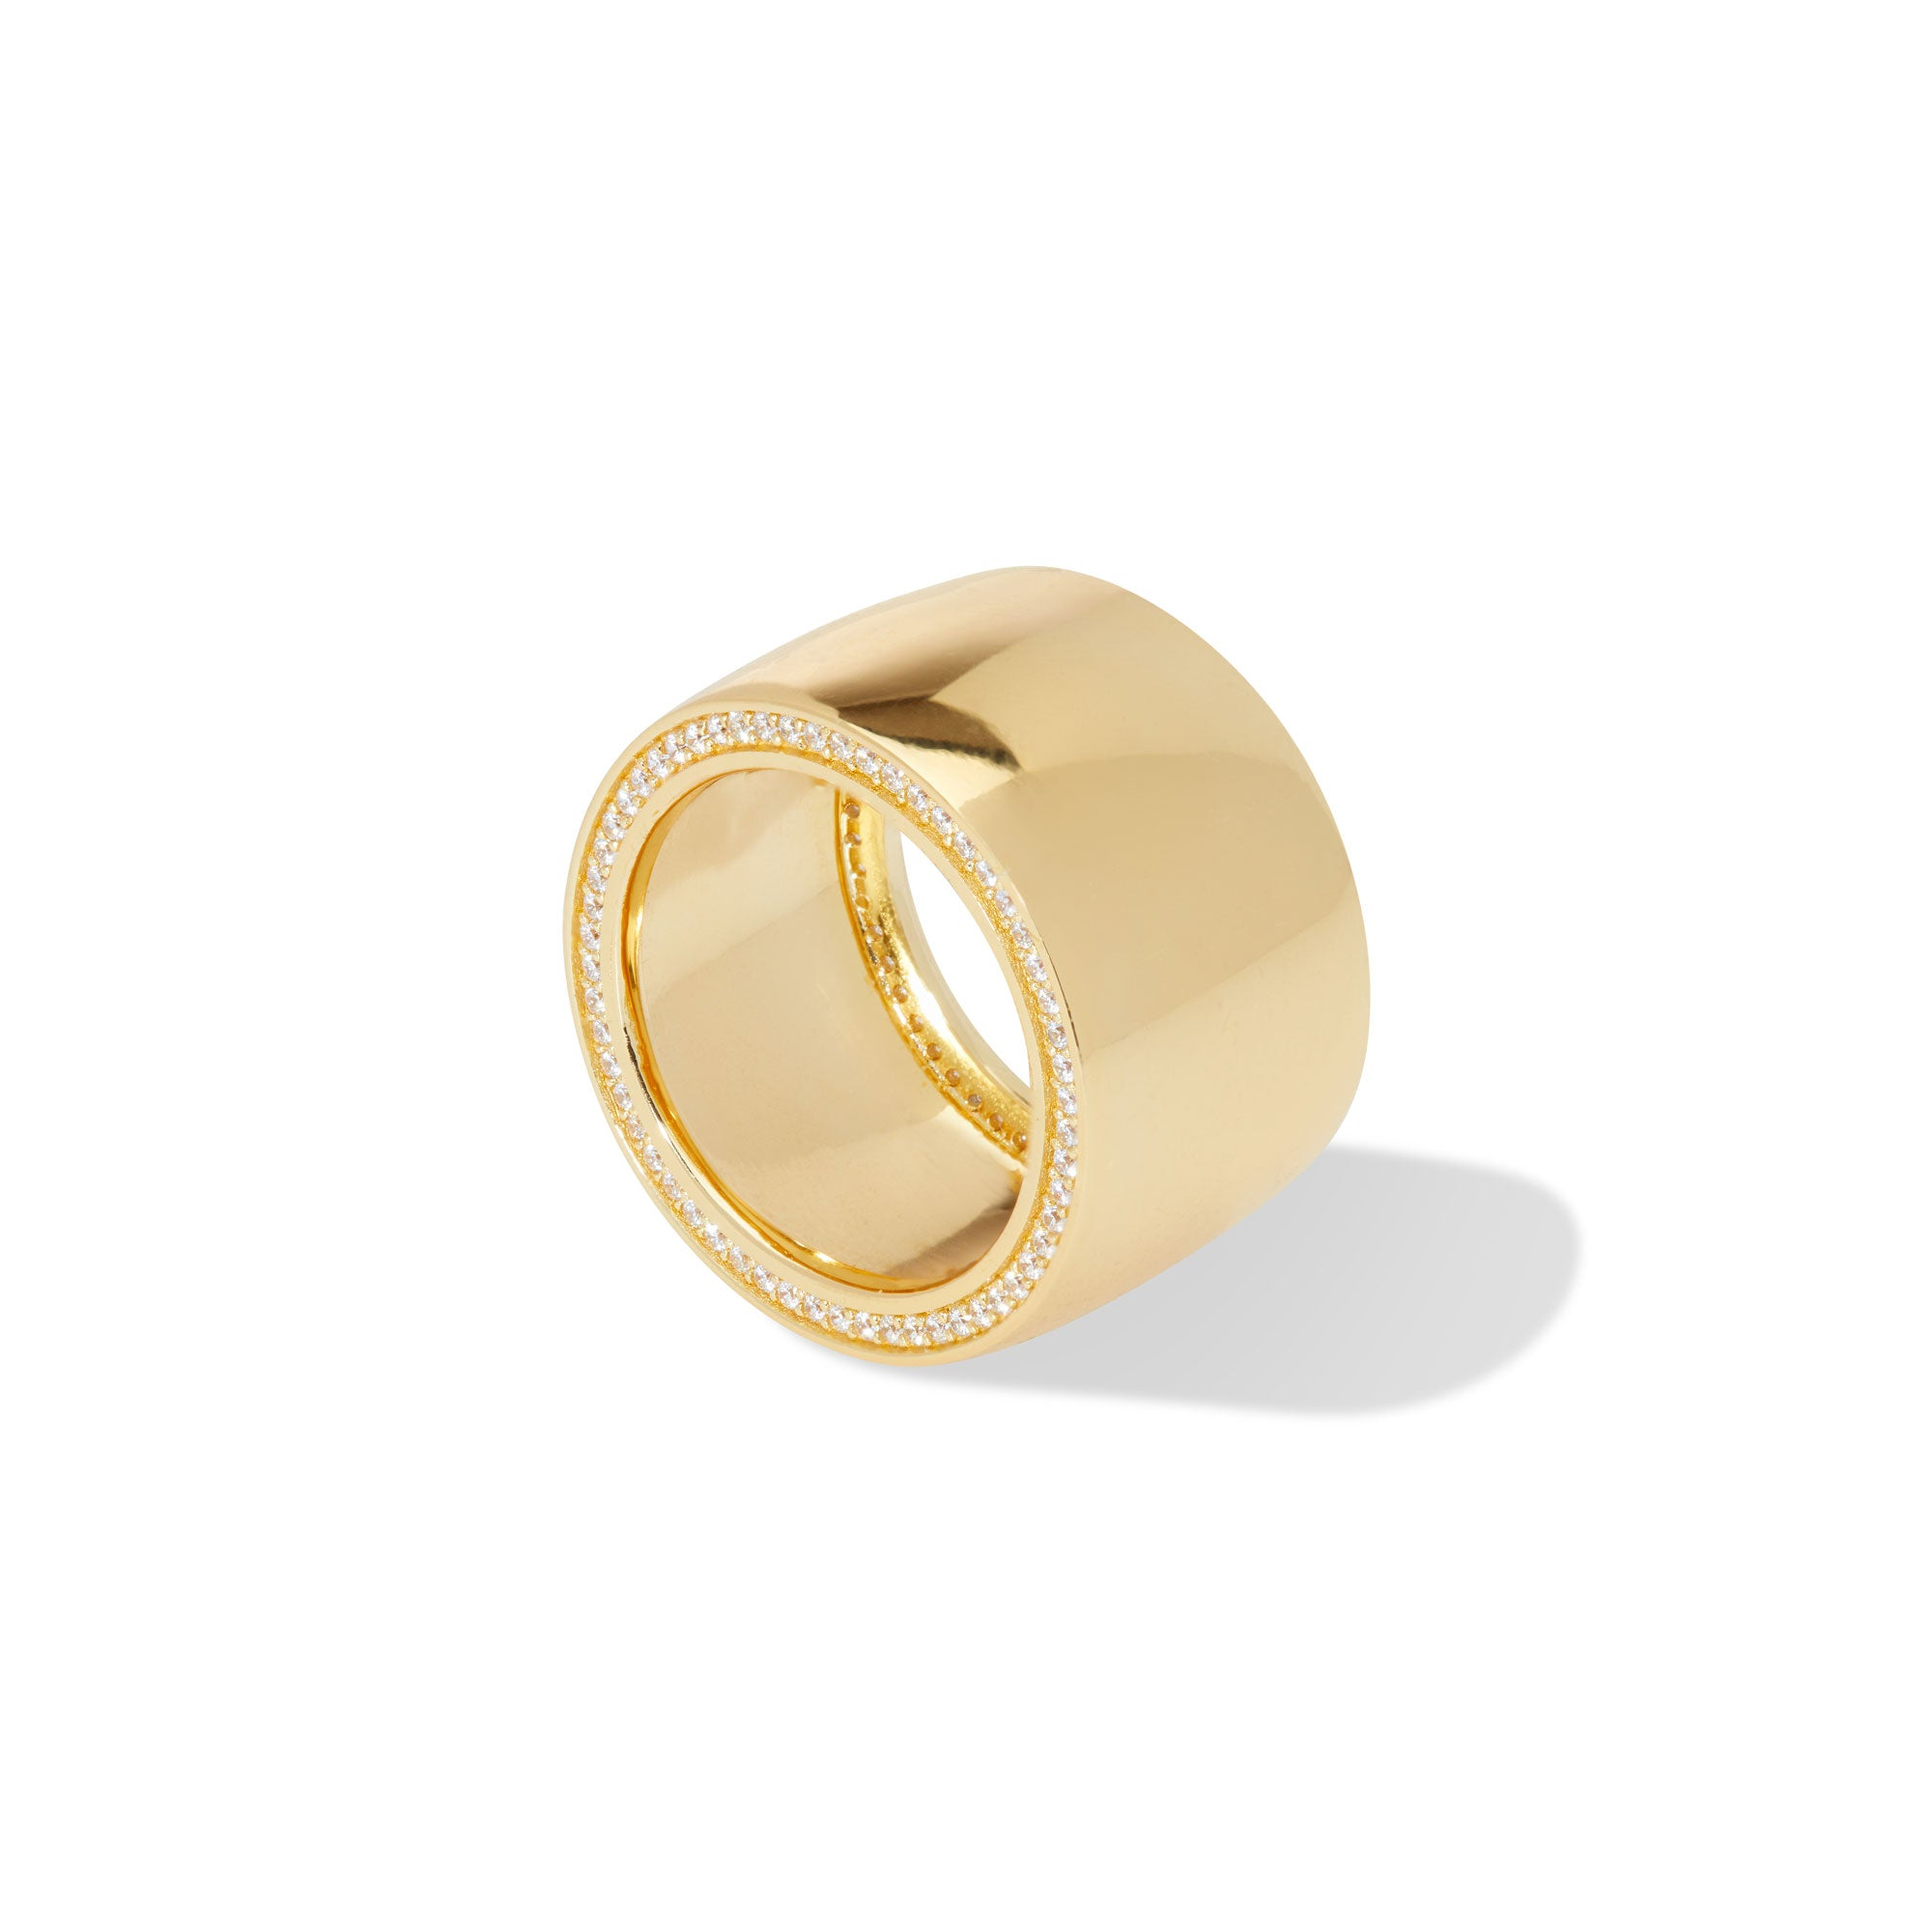 Image of Cigar band gold vermeil ring